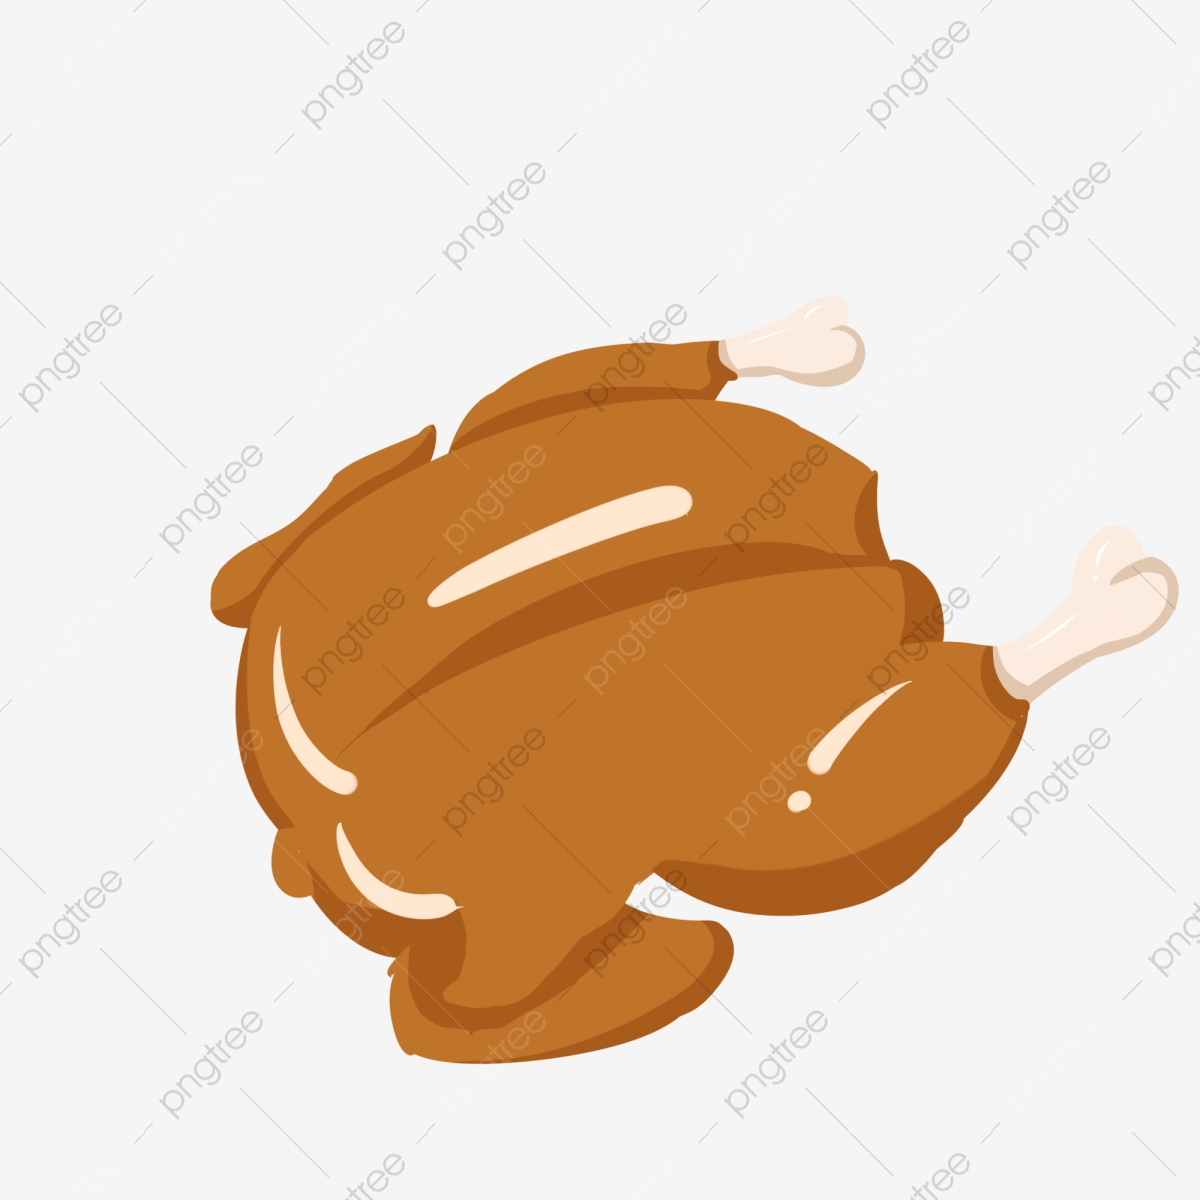 hight resolution of commercial use resource upgrade to premium plan and get license authorization upgradenow roast chicken chicken clipart